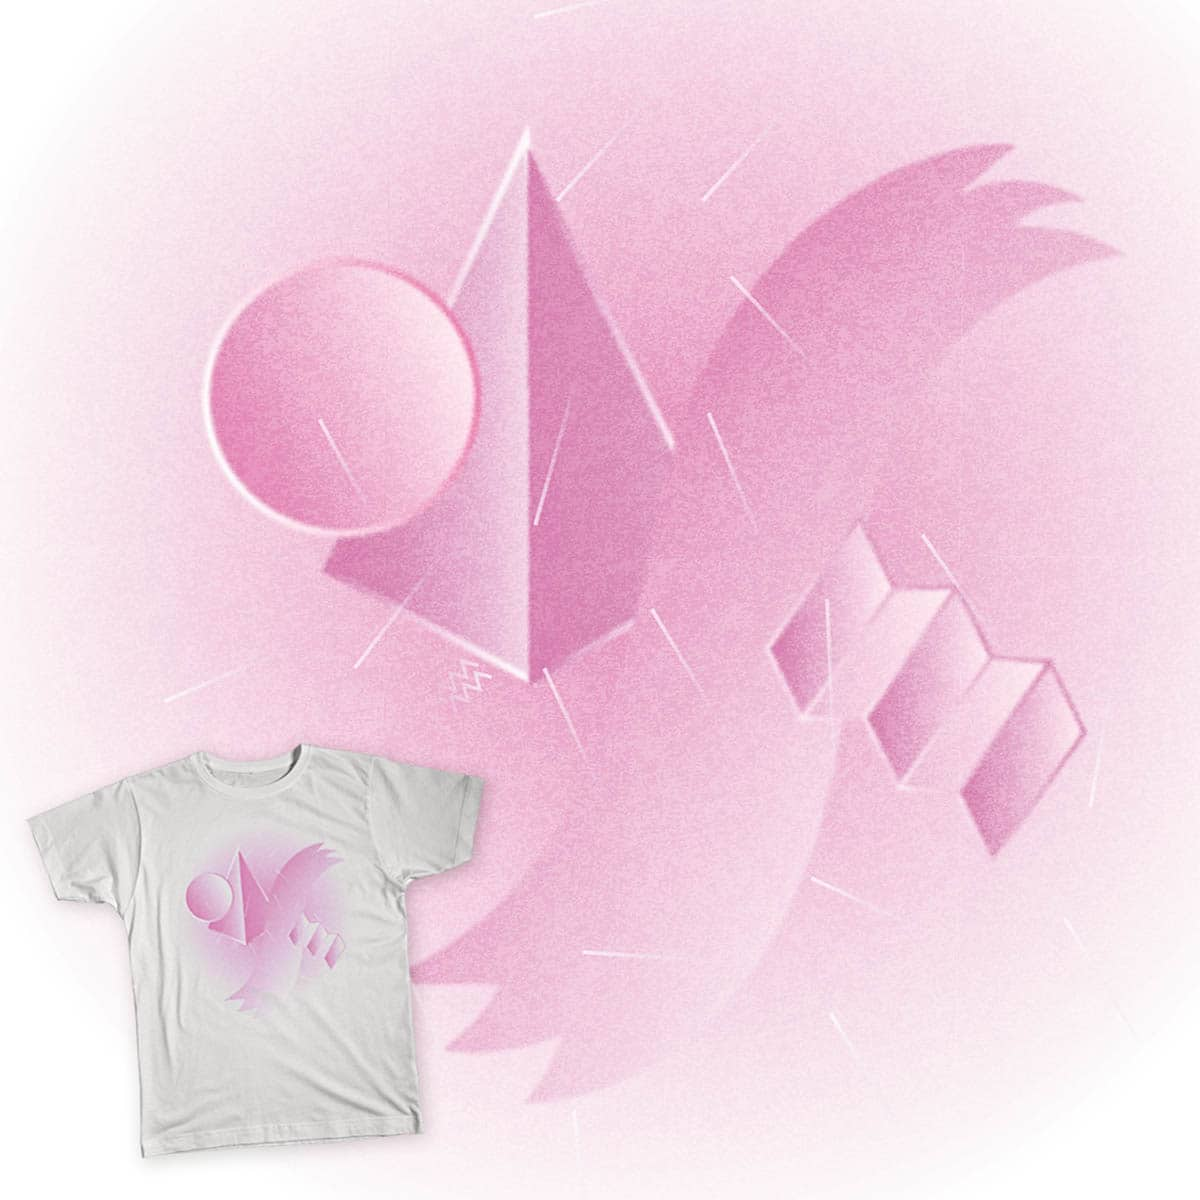 Abstract pink by jeanpaulvsrartr on Threadless